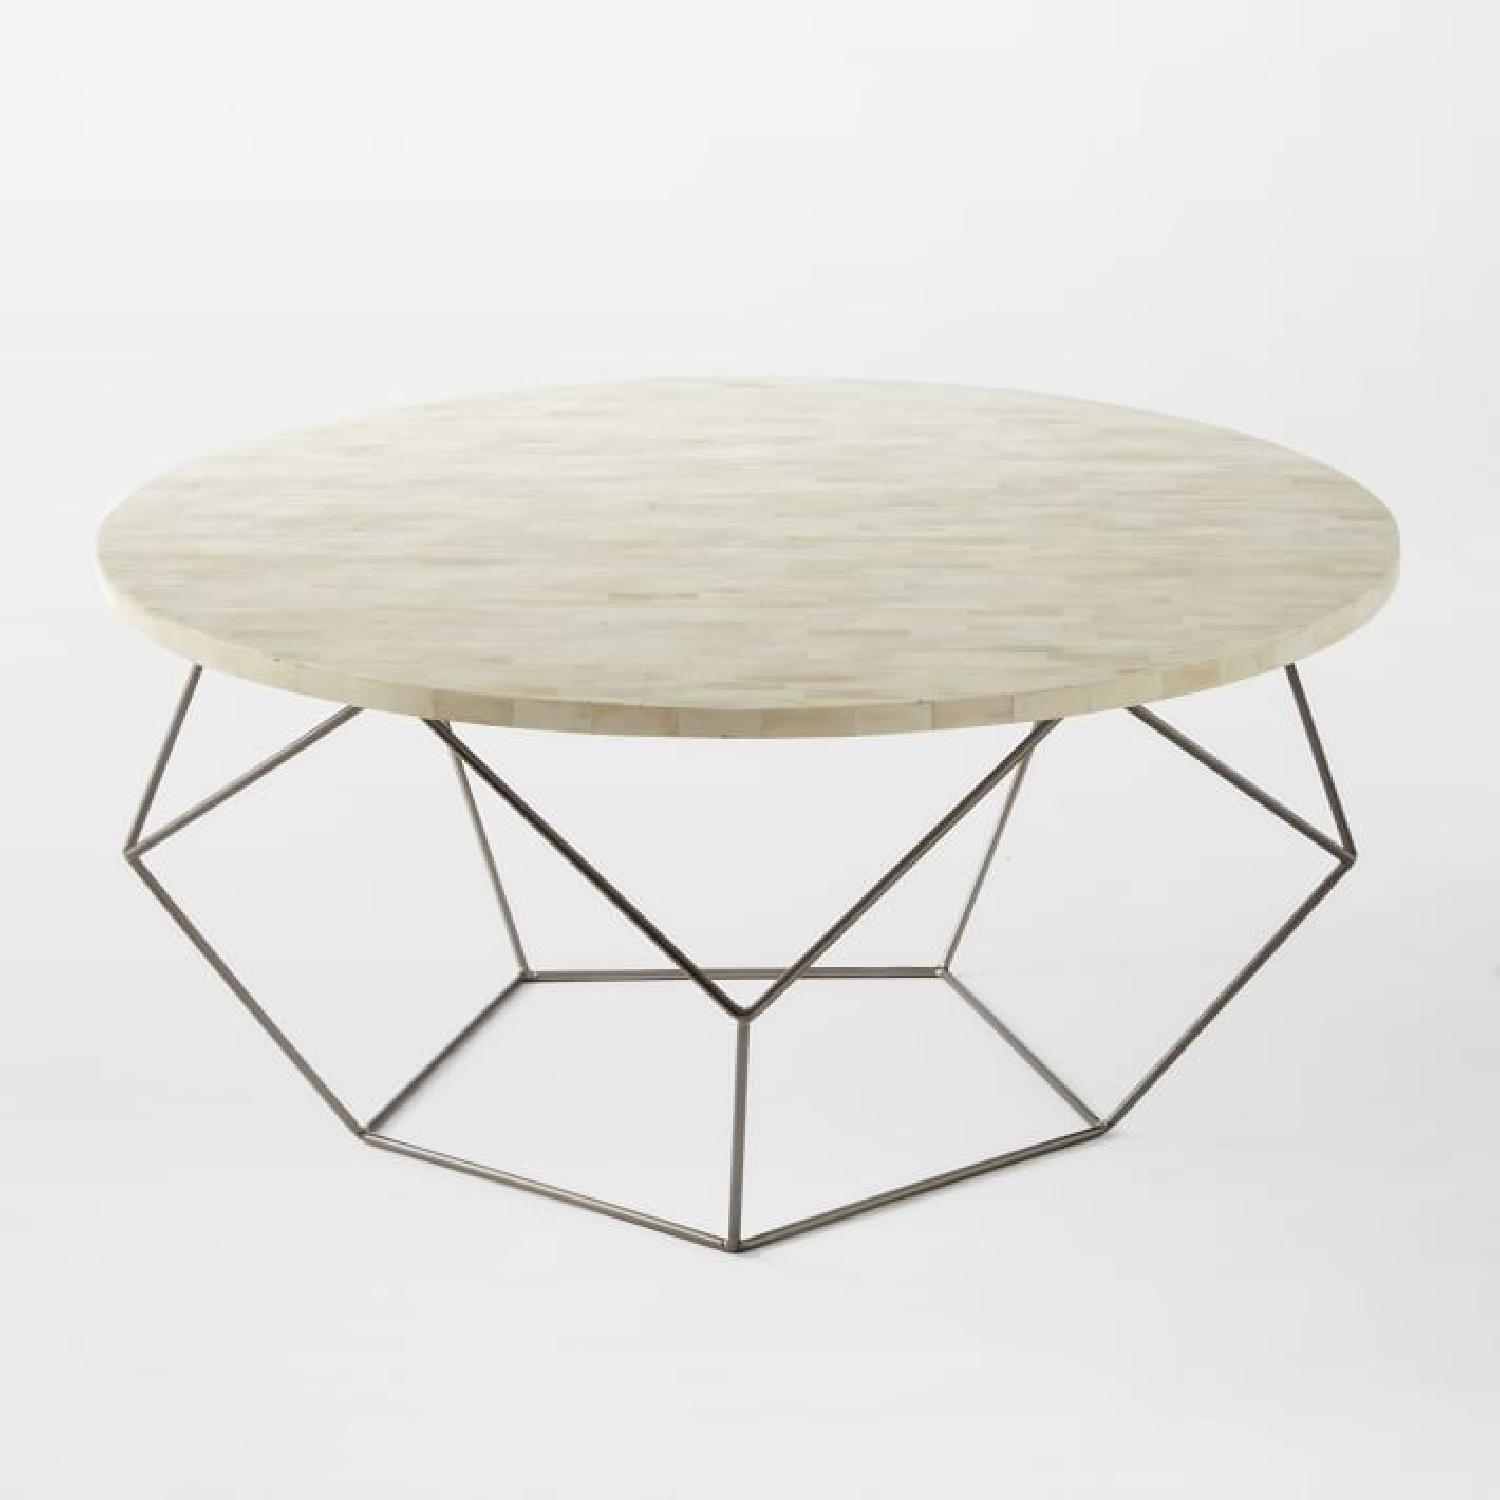 West Elm Origami Coffee Table - image-4